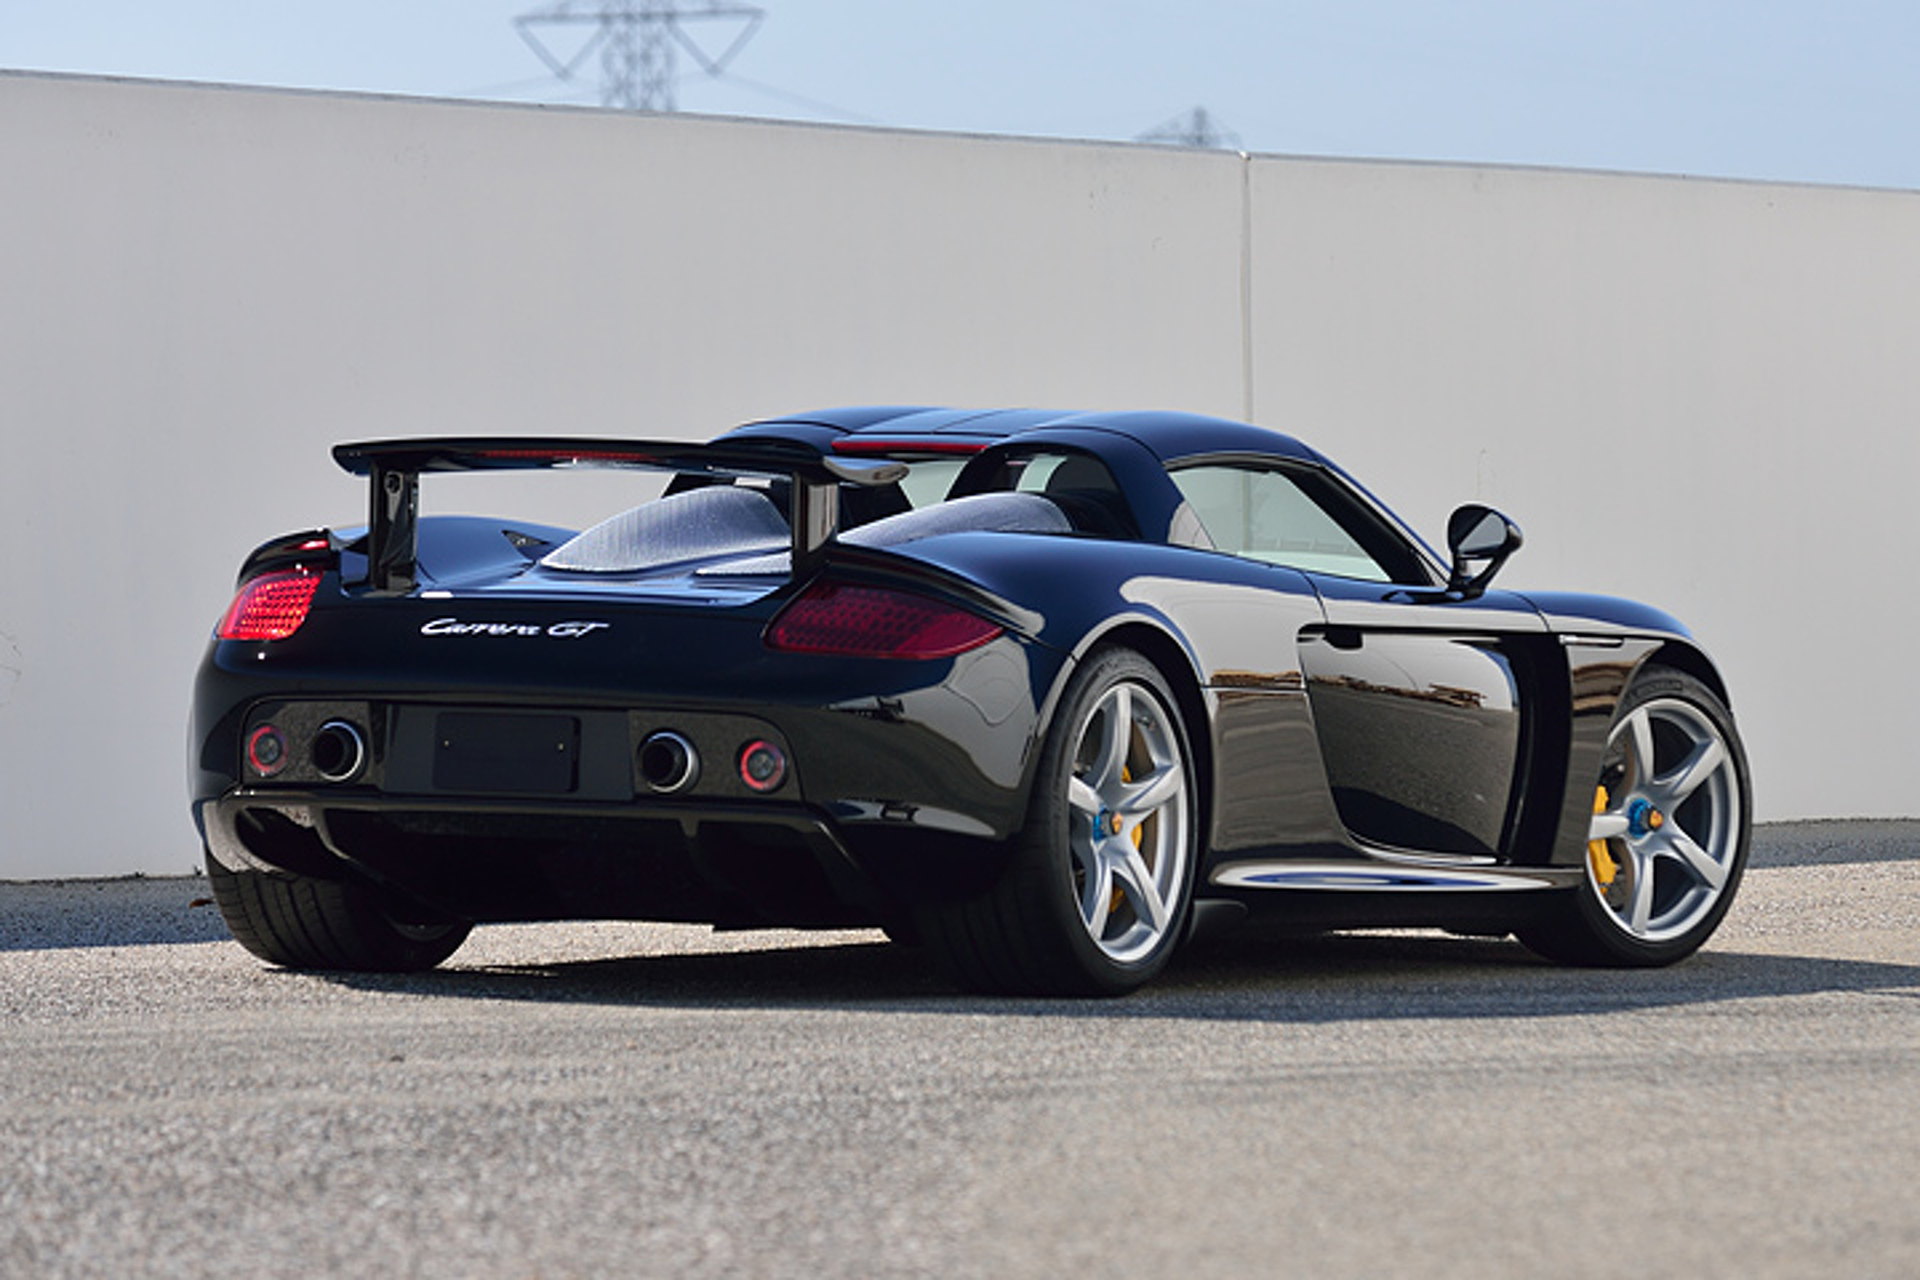 This Porsche Carrera GT Only Has 152 Miles to its Name